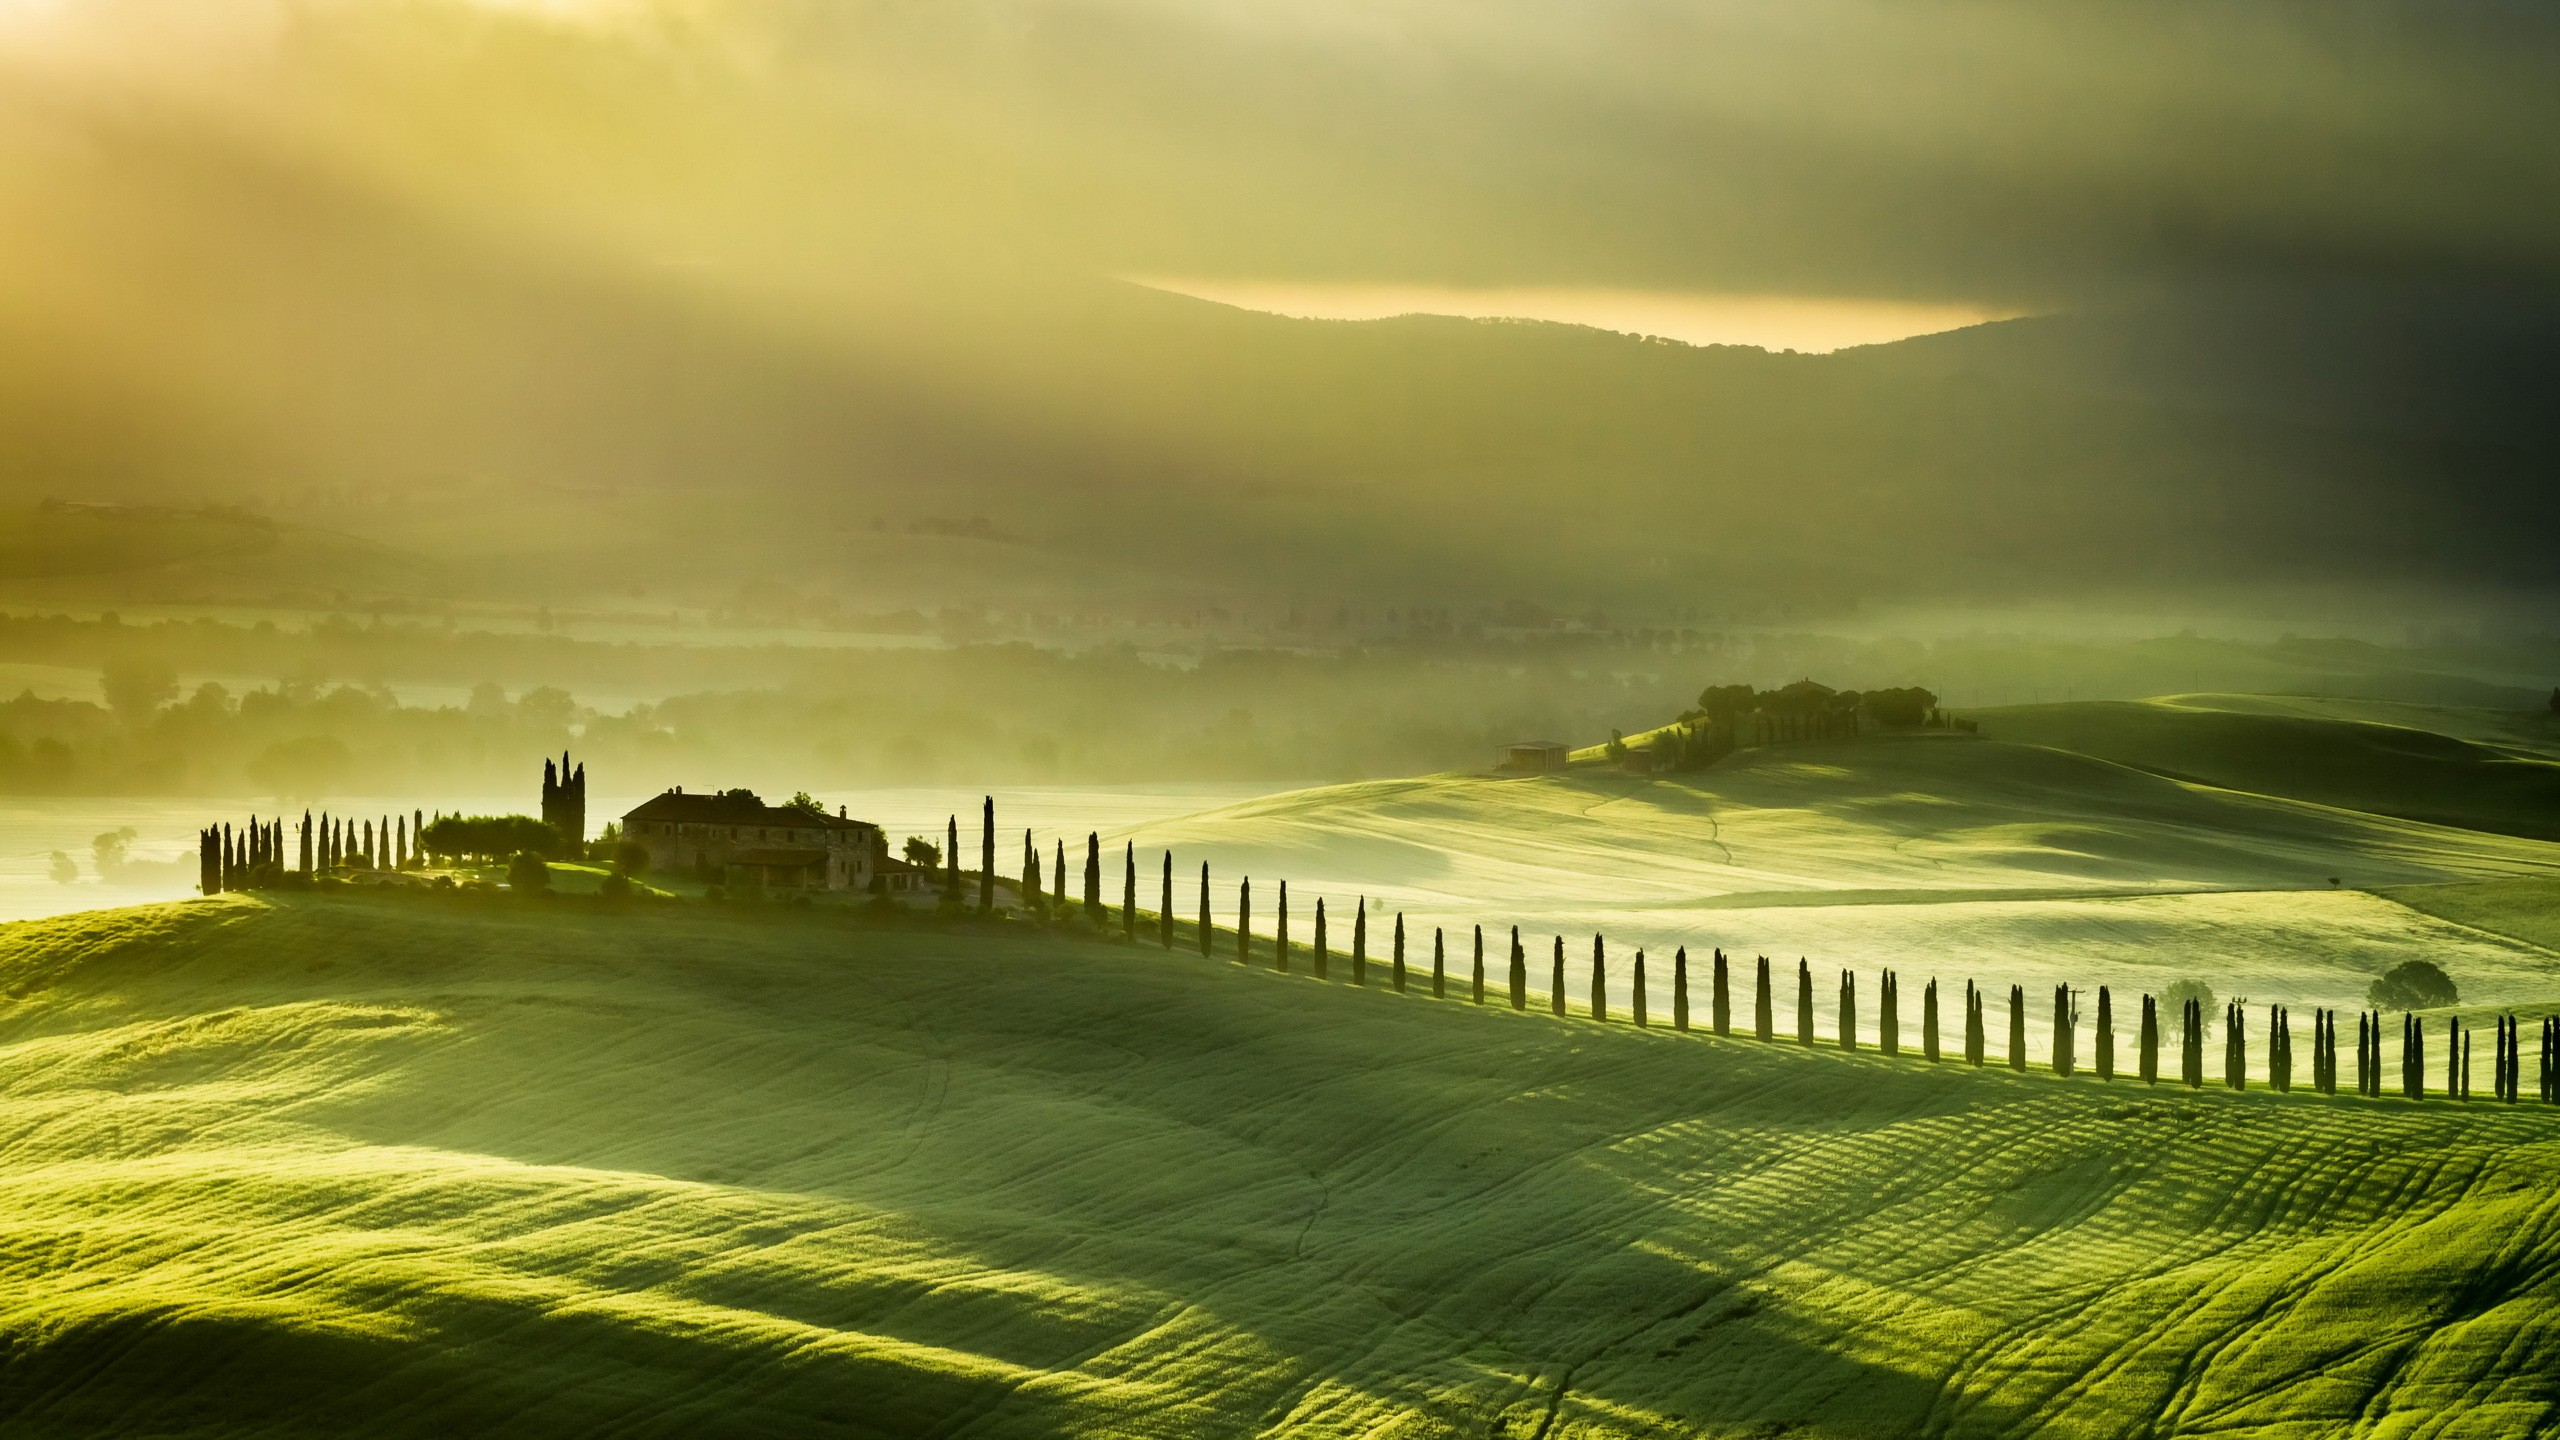 Farm background download free stunning full hd backgrounds for 2560x1440 italy green farm landscape hills widescreen high resolution wallpaper voltagebd Gallery